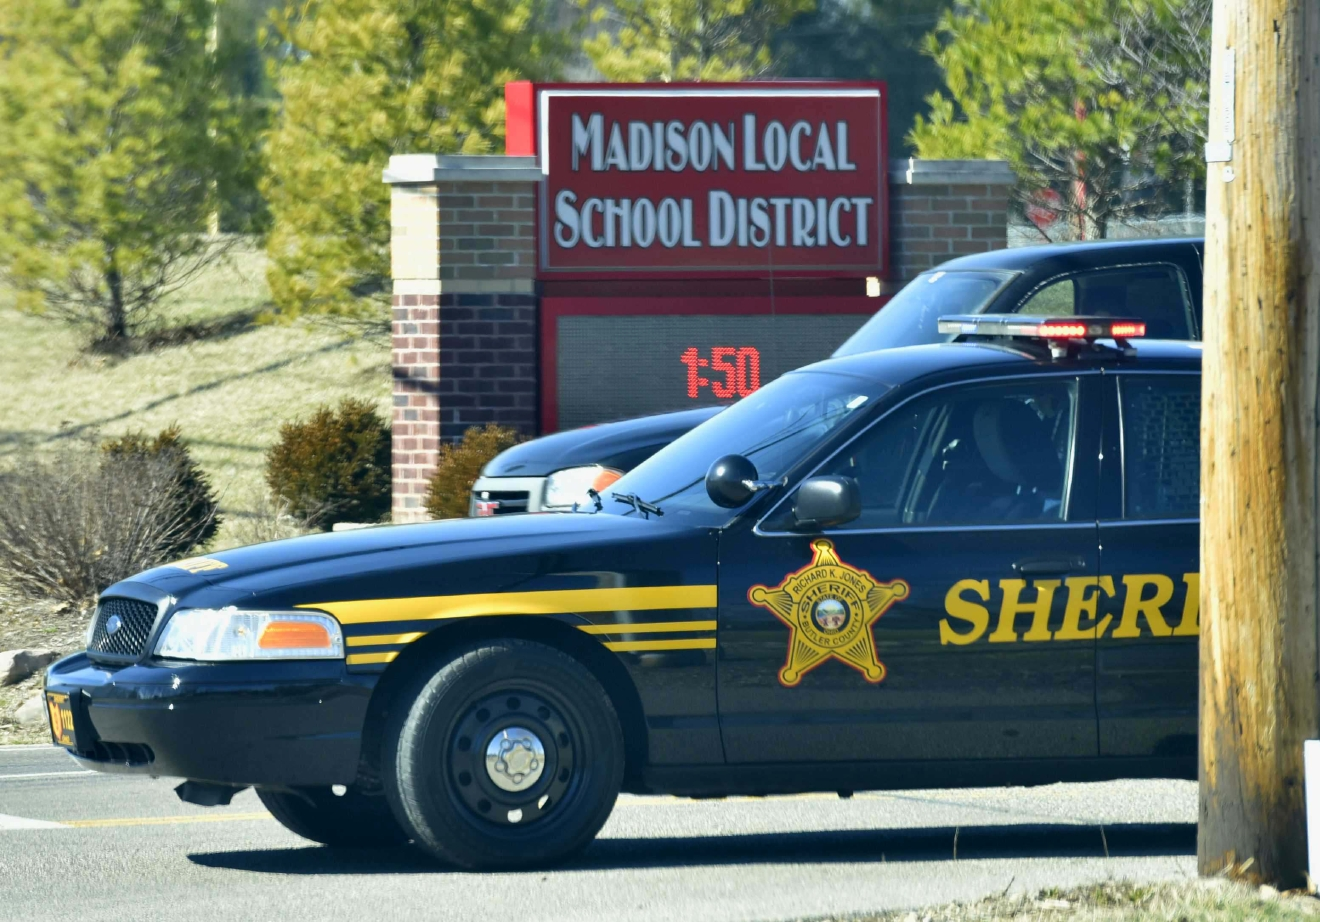 Police vehicles block the entrance of Madison Local Schools, Monday, Feb. 29, 2016, in Madison Township in Butler County, Ohio, after a school shooting. An Ohio sheriff says a 14-year-old suspect in the school shooting that wounded multiple classmates is in custody. (Nick Graham/Dayton Daily News via AP)